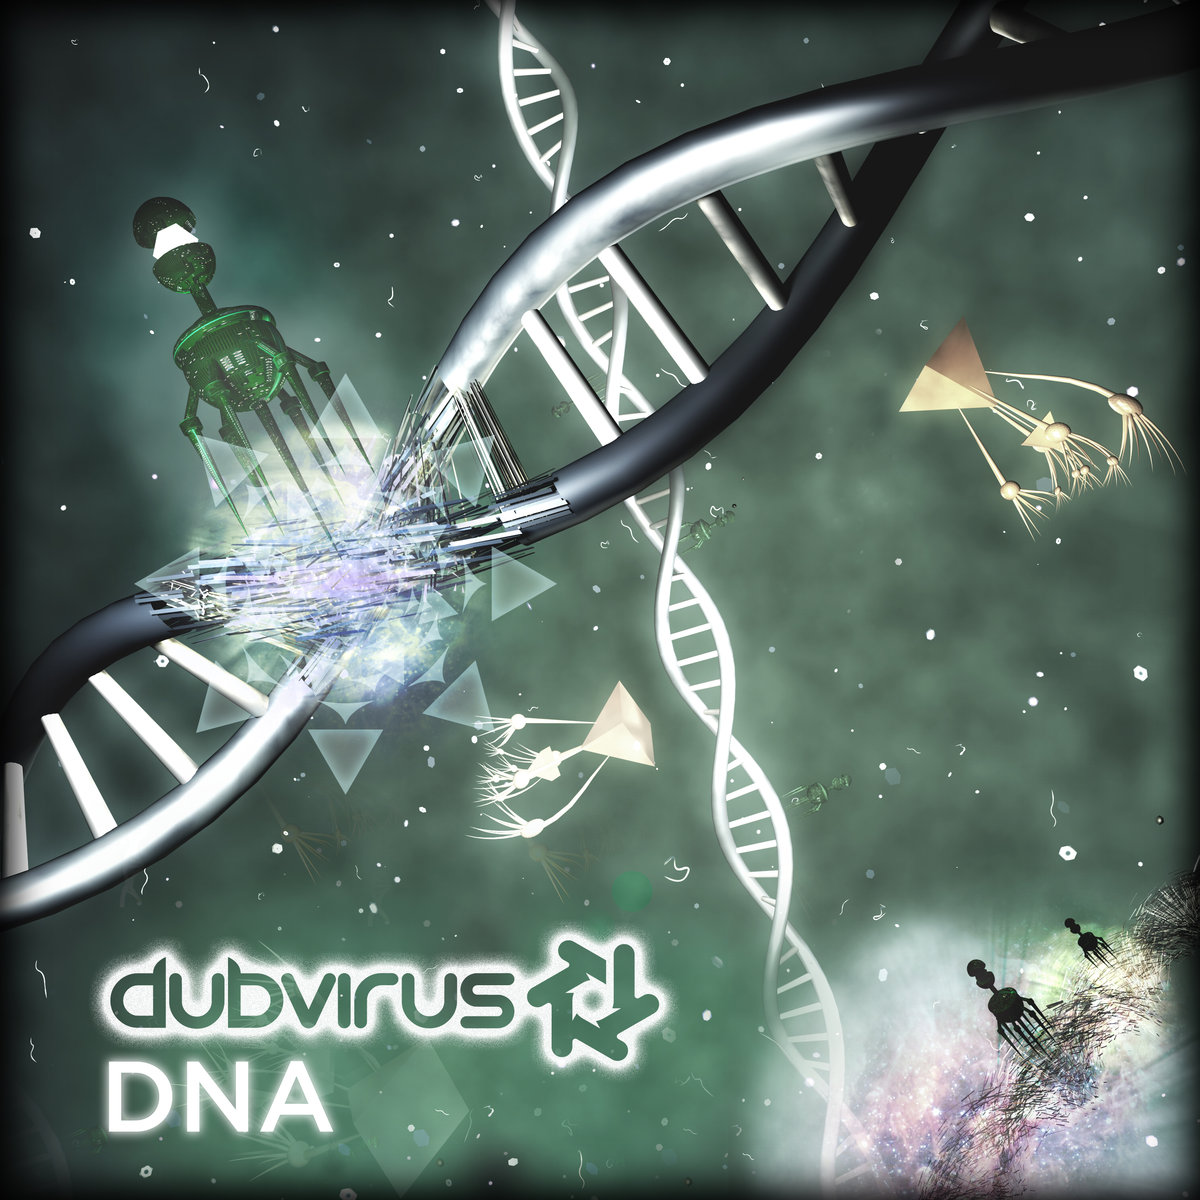 Dubvirus - Bridging the Gap @ 'DNA' album (bass, dubstep)